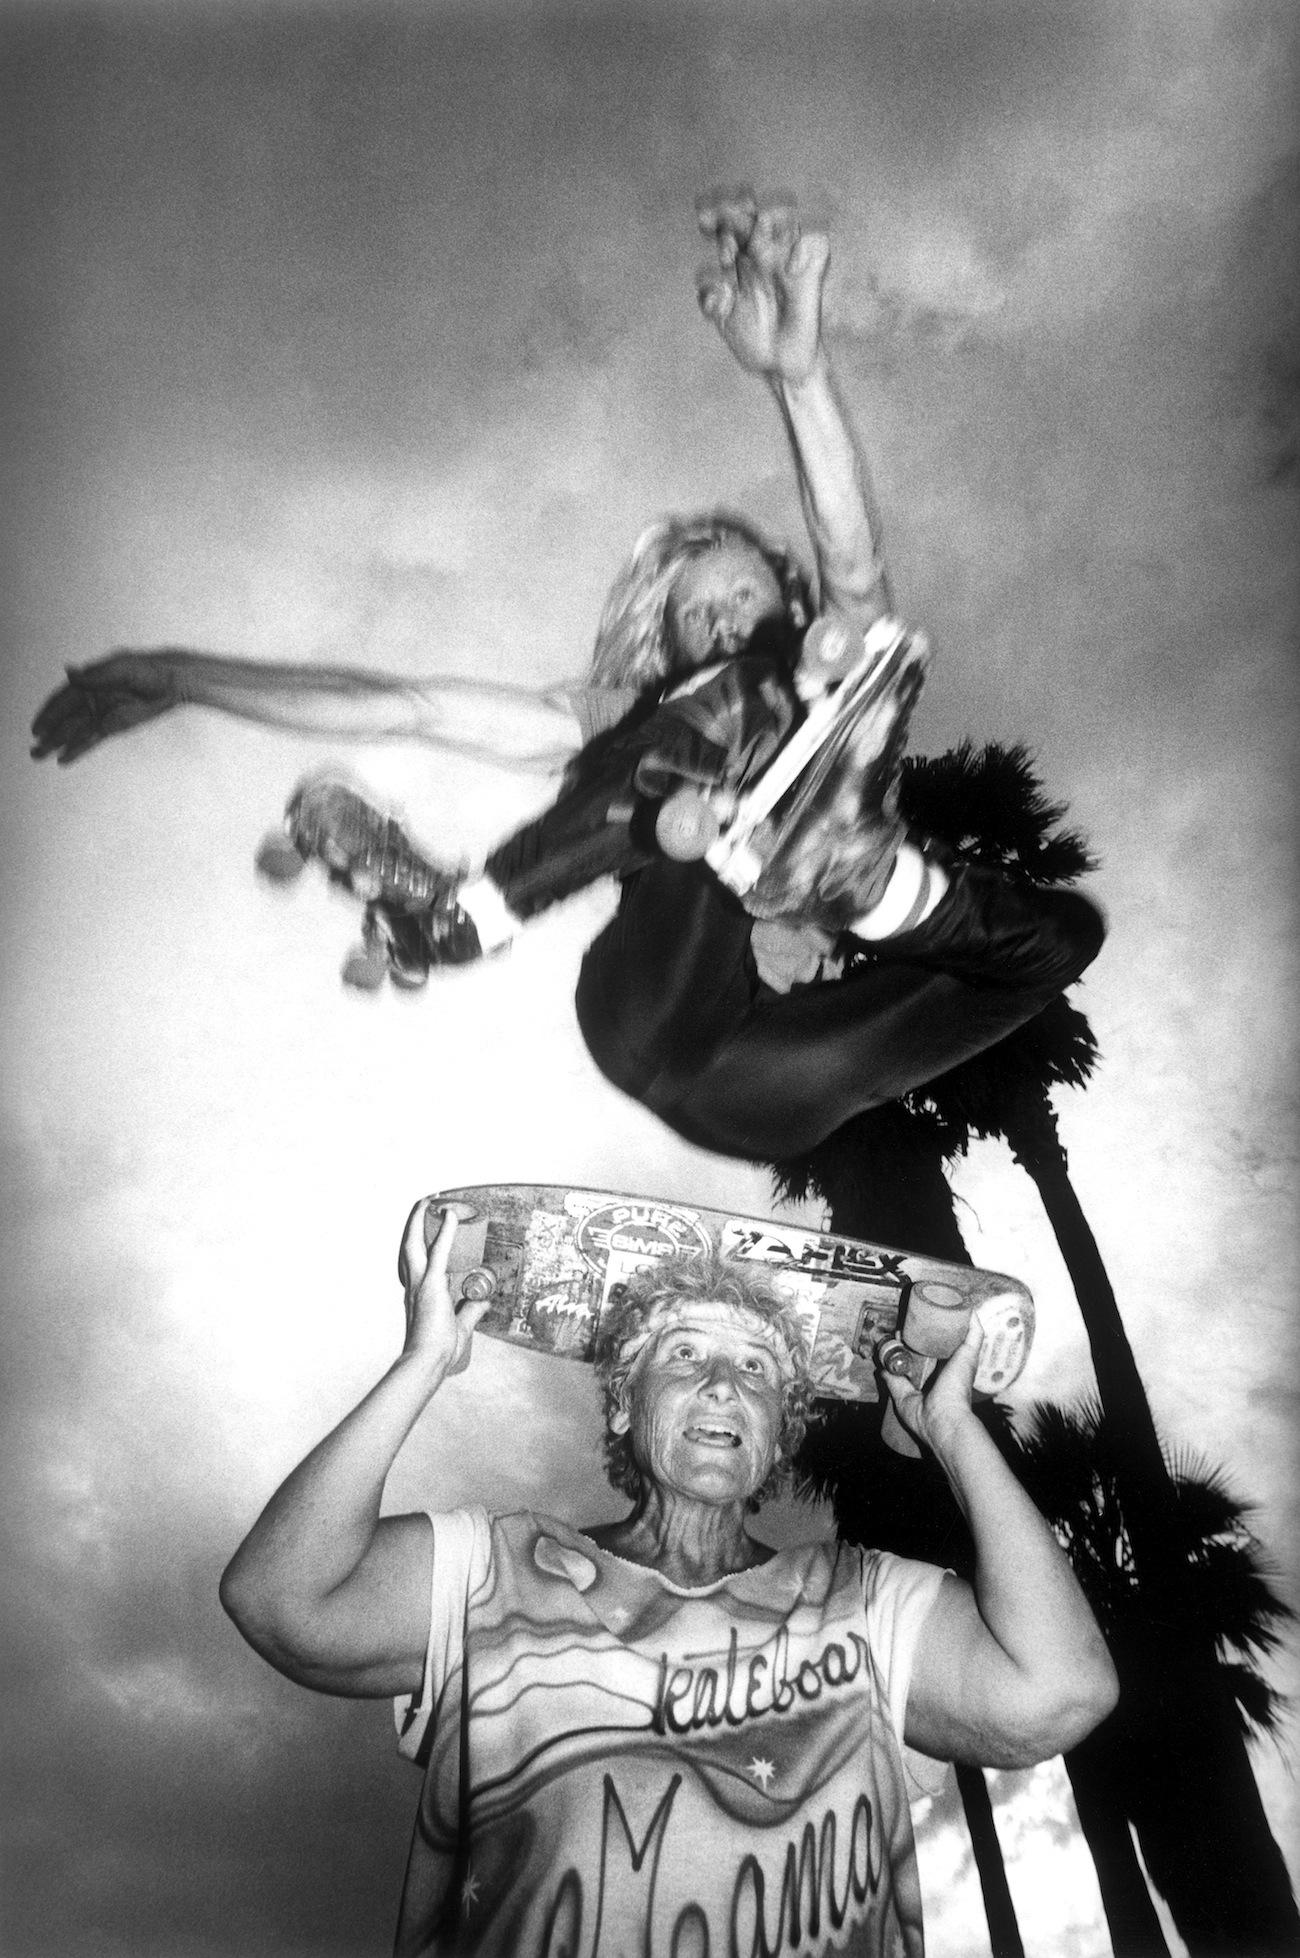 claudio-edinger-on-reuniting-with-the-venice-beach-eccentrics-he-photographed-over-30-years-ago-body-image-1470257837